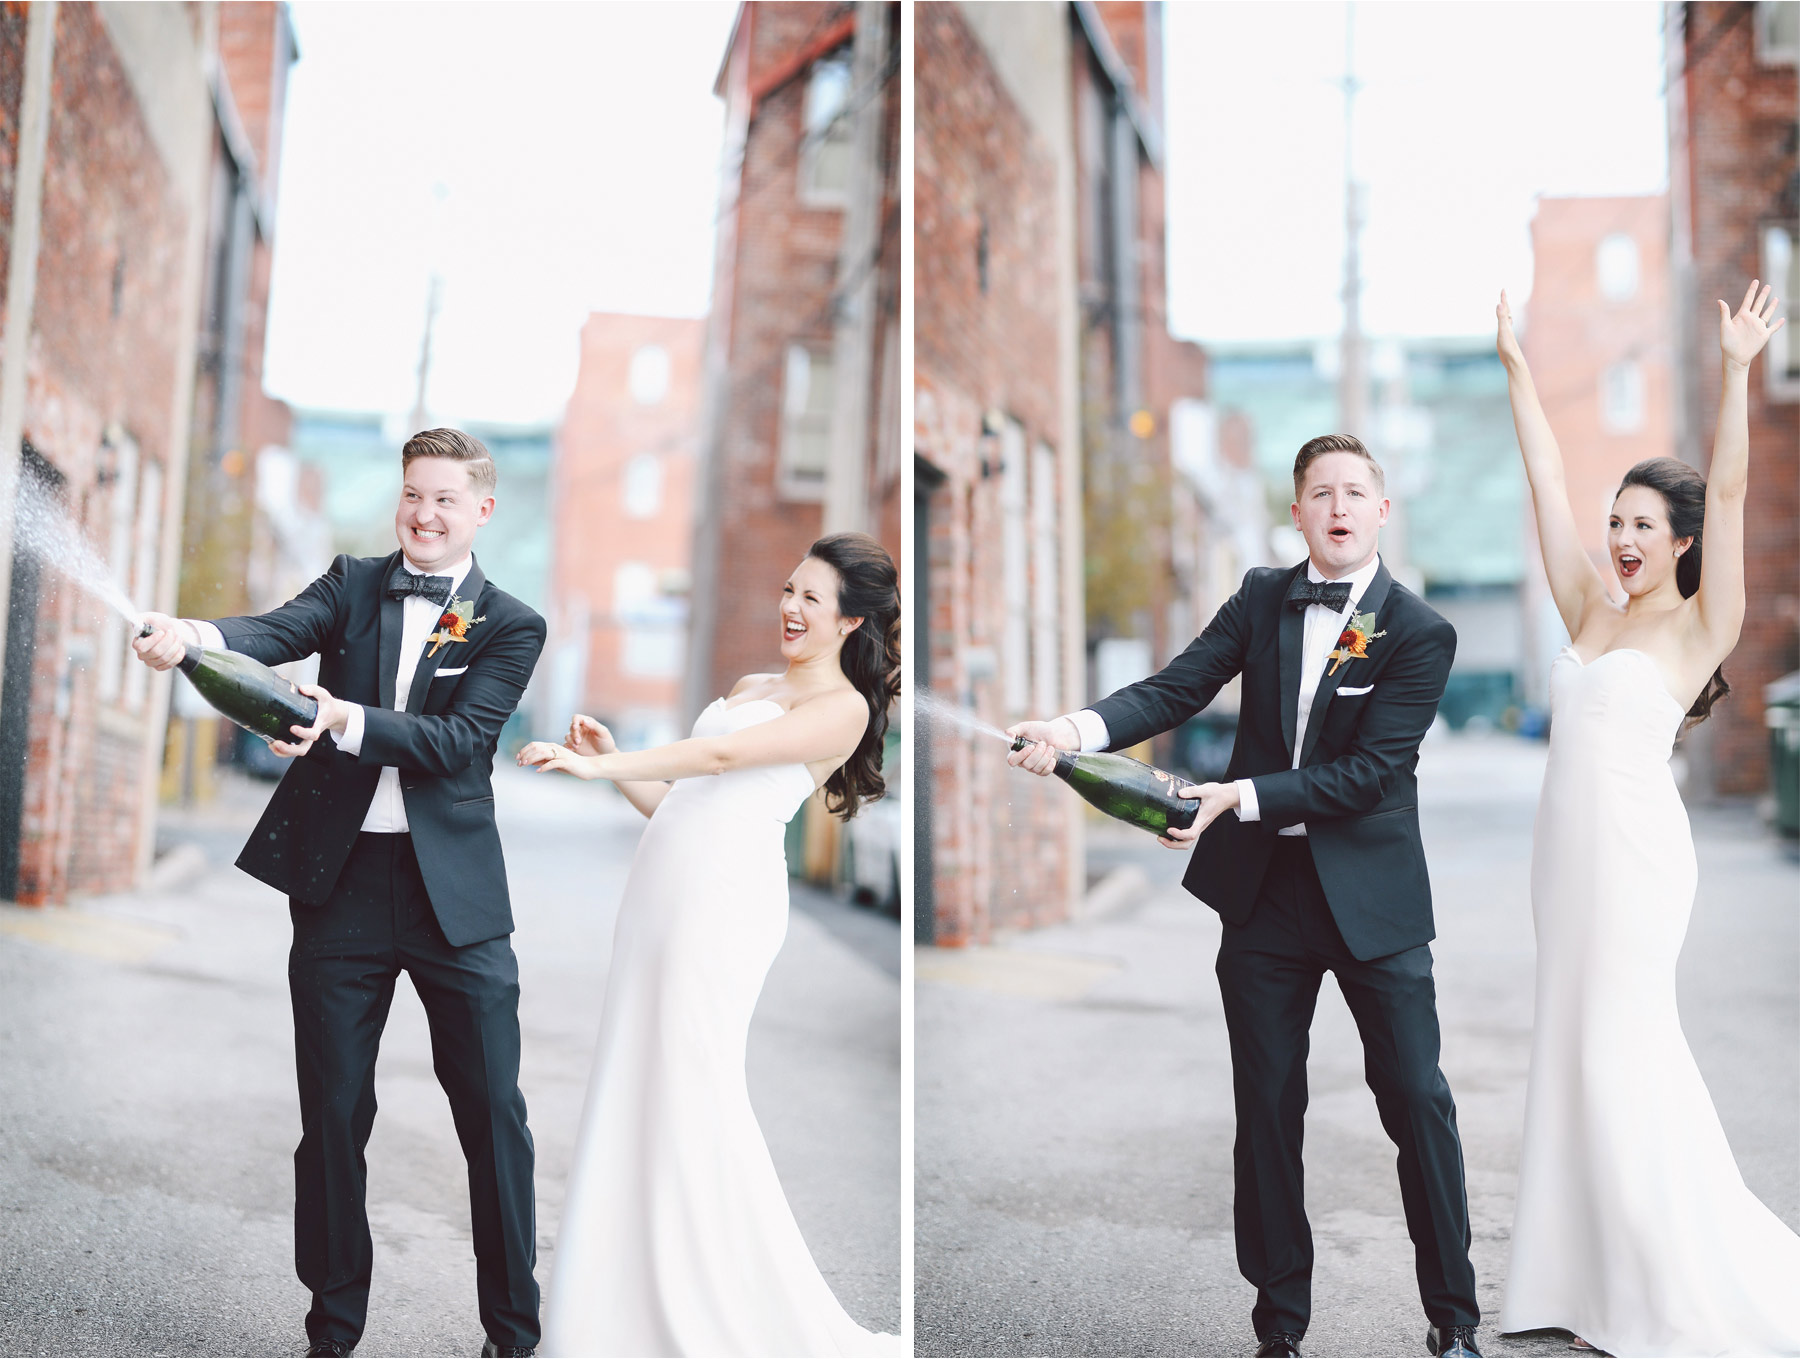 13-Kansas-City-Missouri-Destination-Wedding-Photography-by-Vick-Photography-Popping-Champagne-Downtown-Carly-and-Kenny.jpg